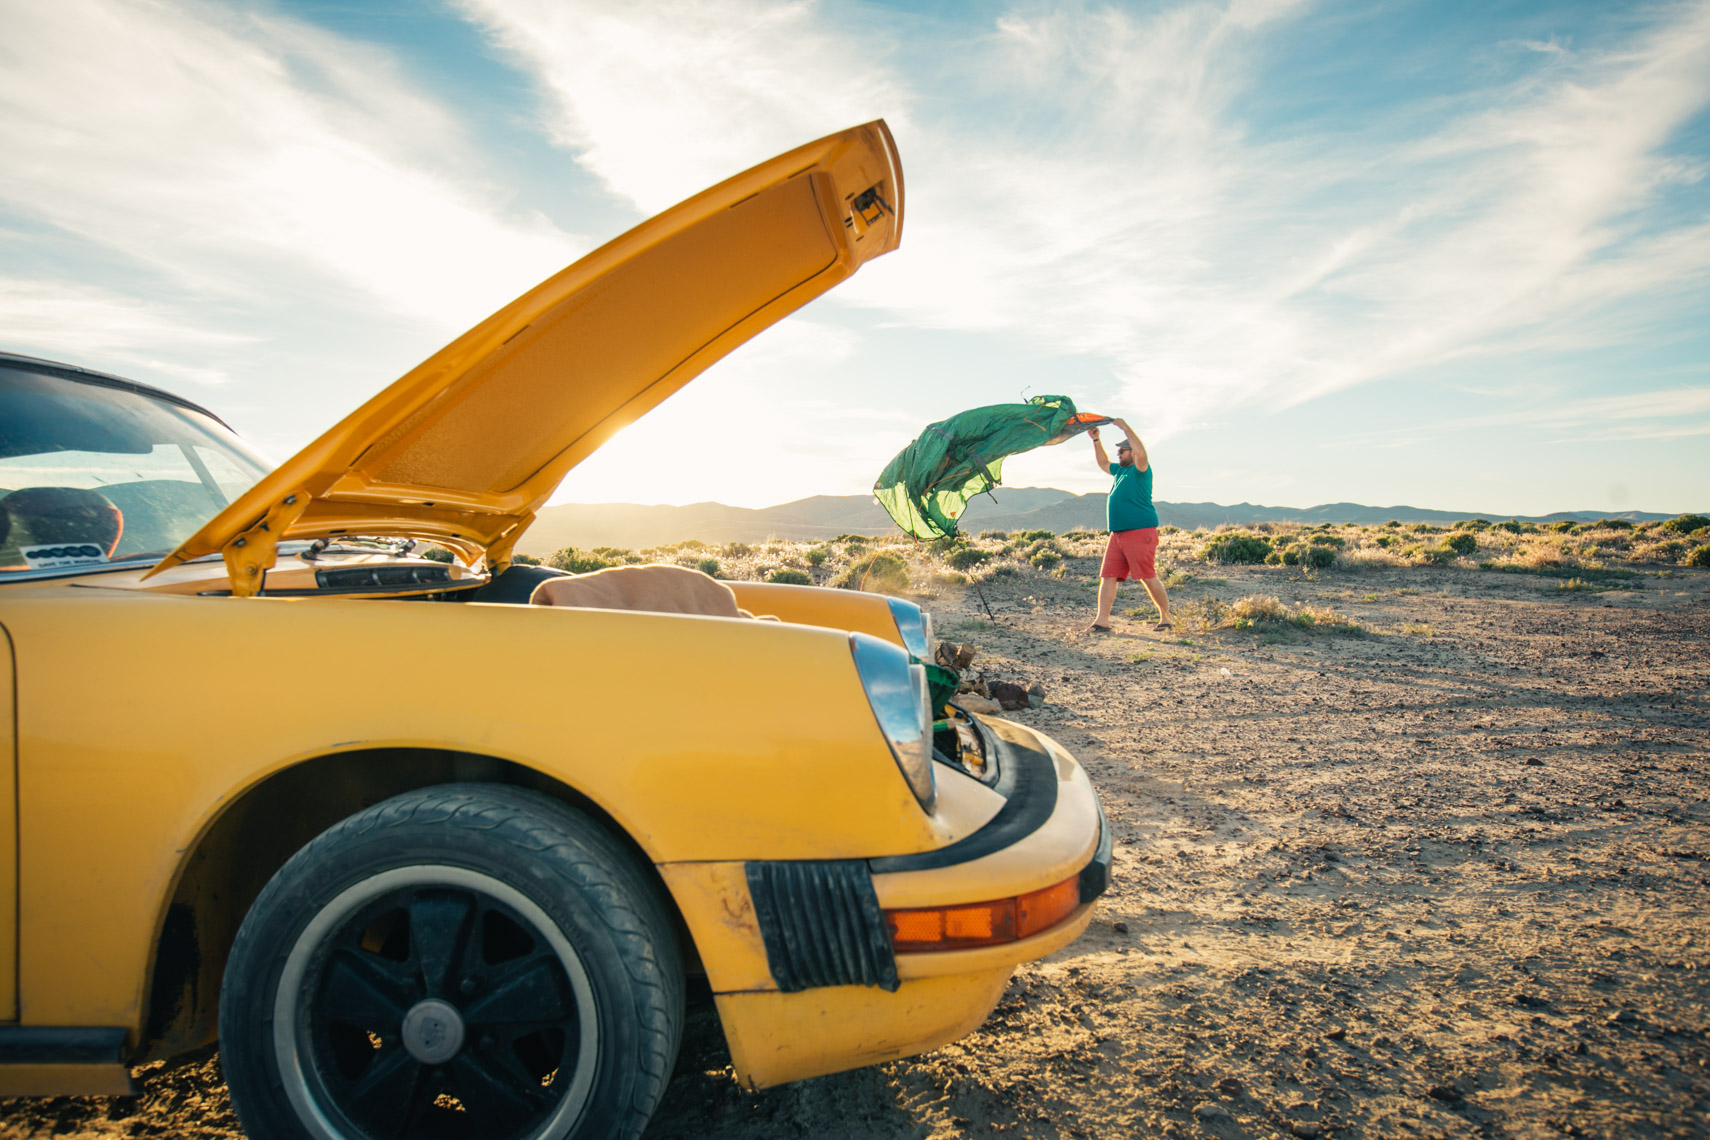 Man With Porsche in Desert